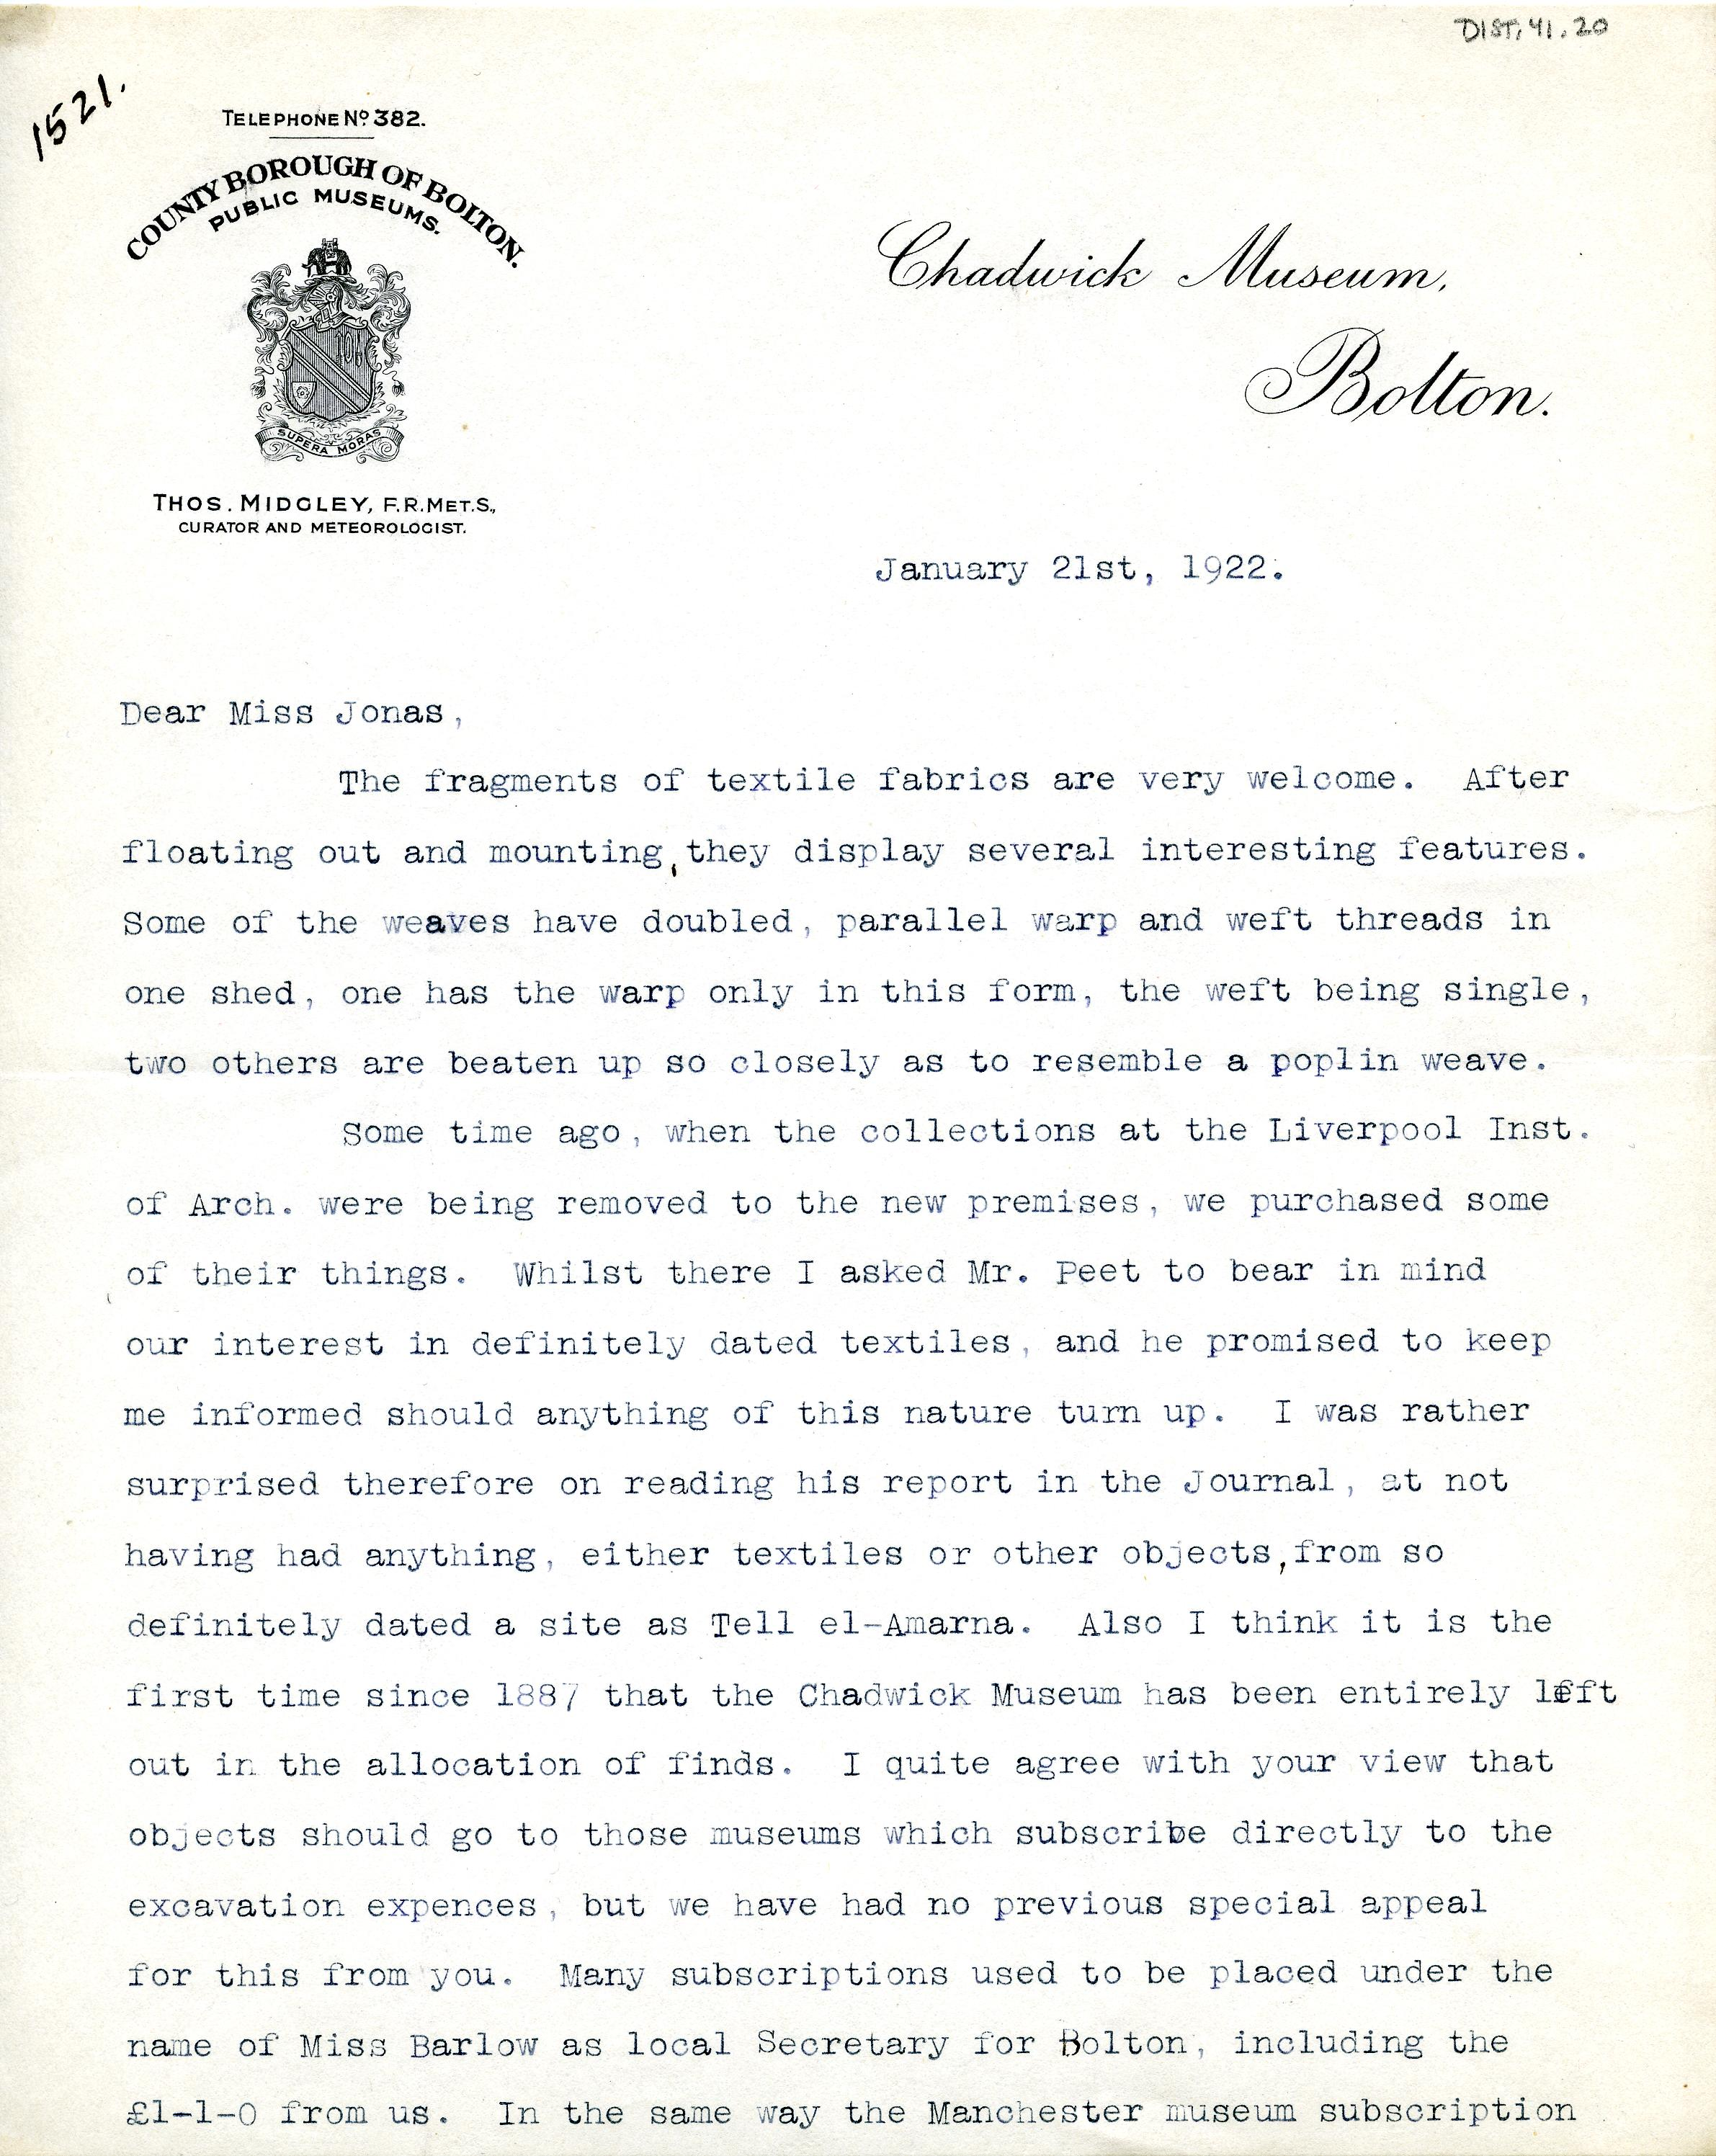 1922-76 Miscellaneous correspondence with museums DIST.41.20a